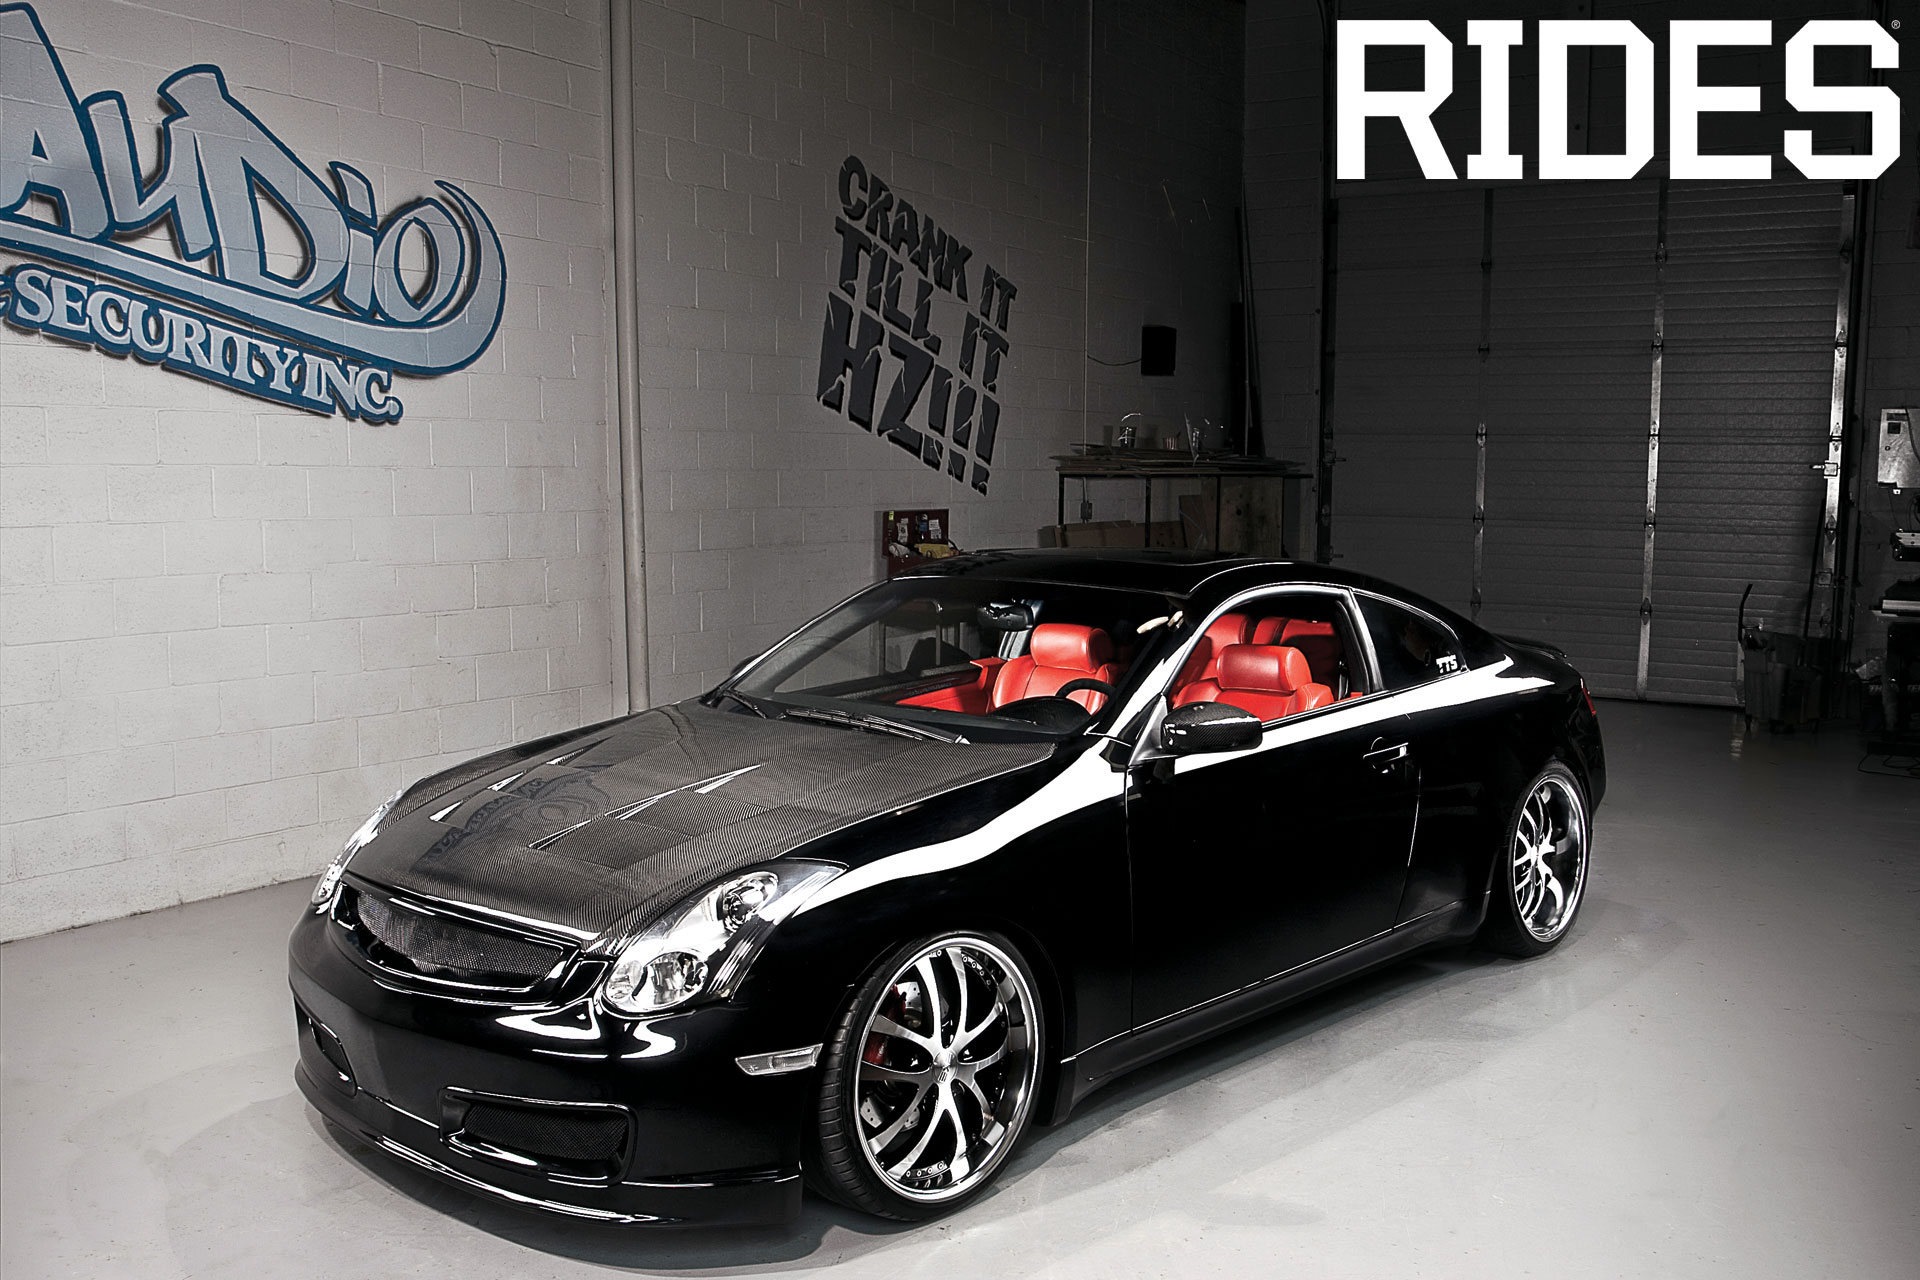 rides cars infiniti g35 20hz audio canada mr cleen